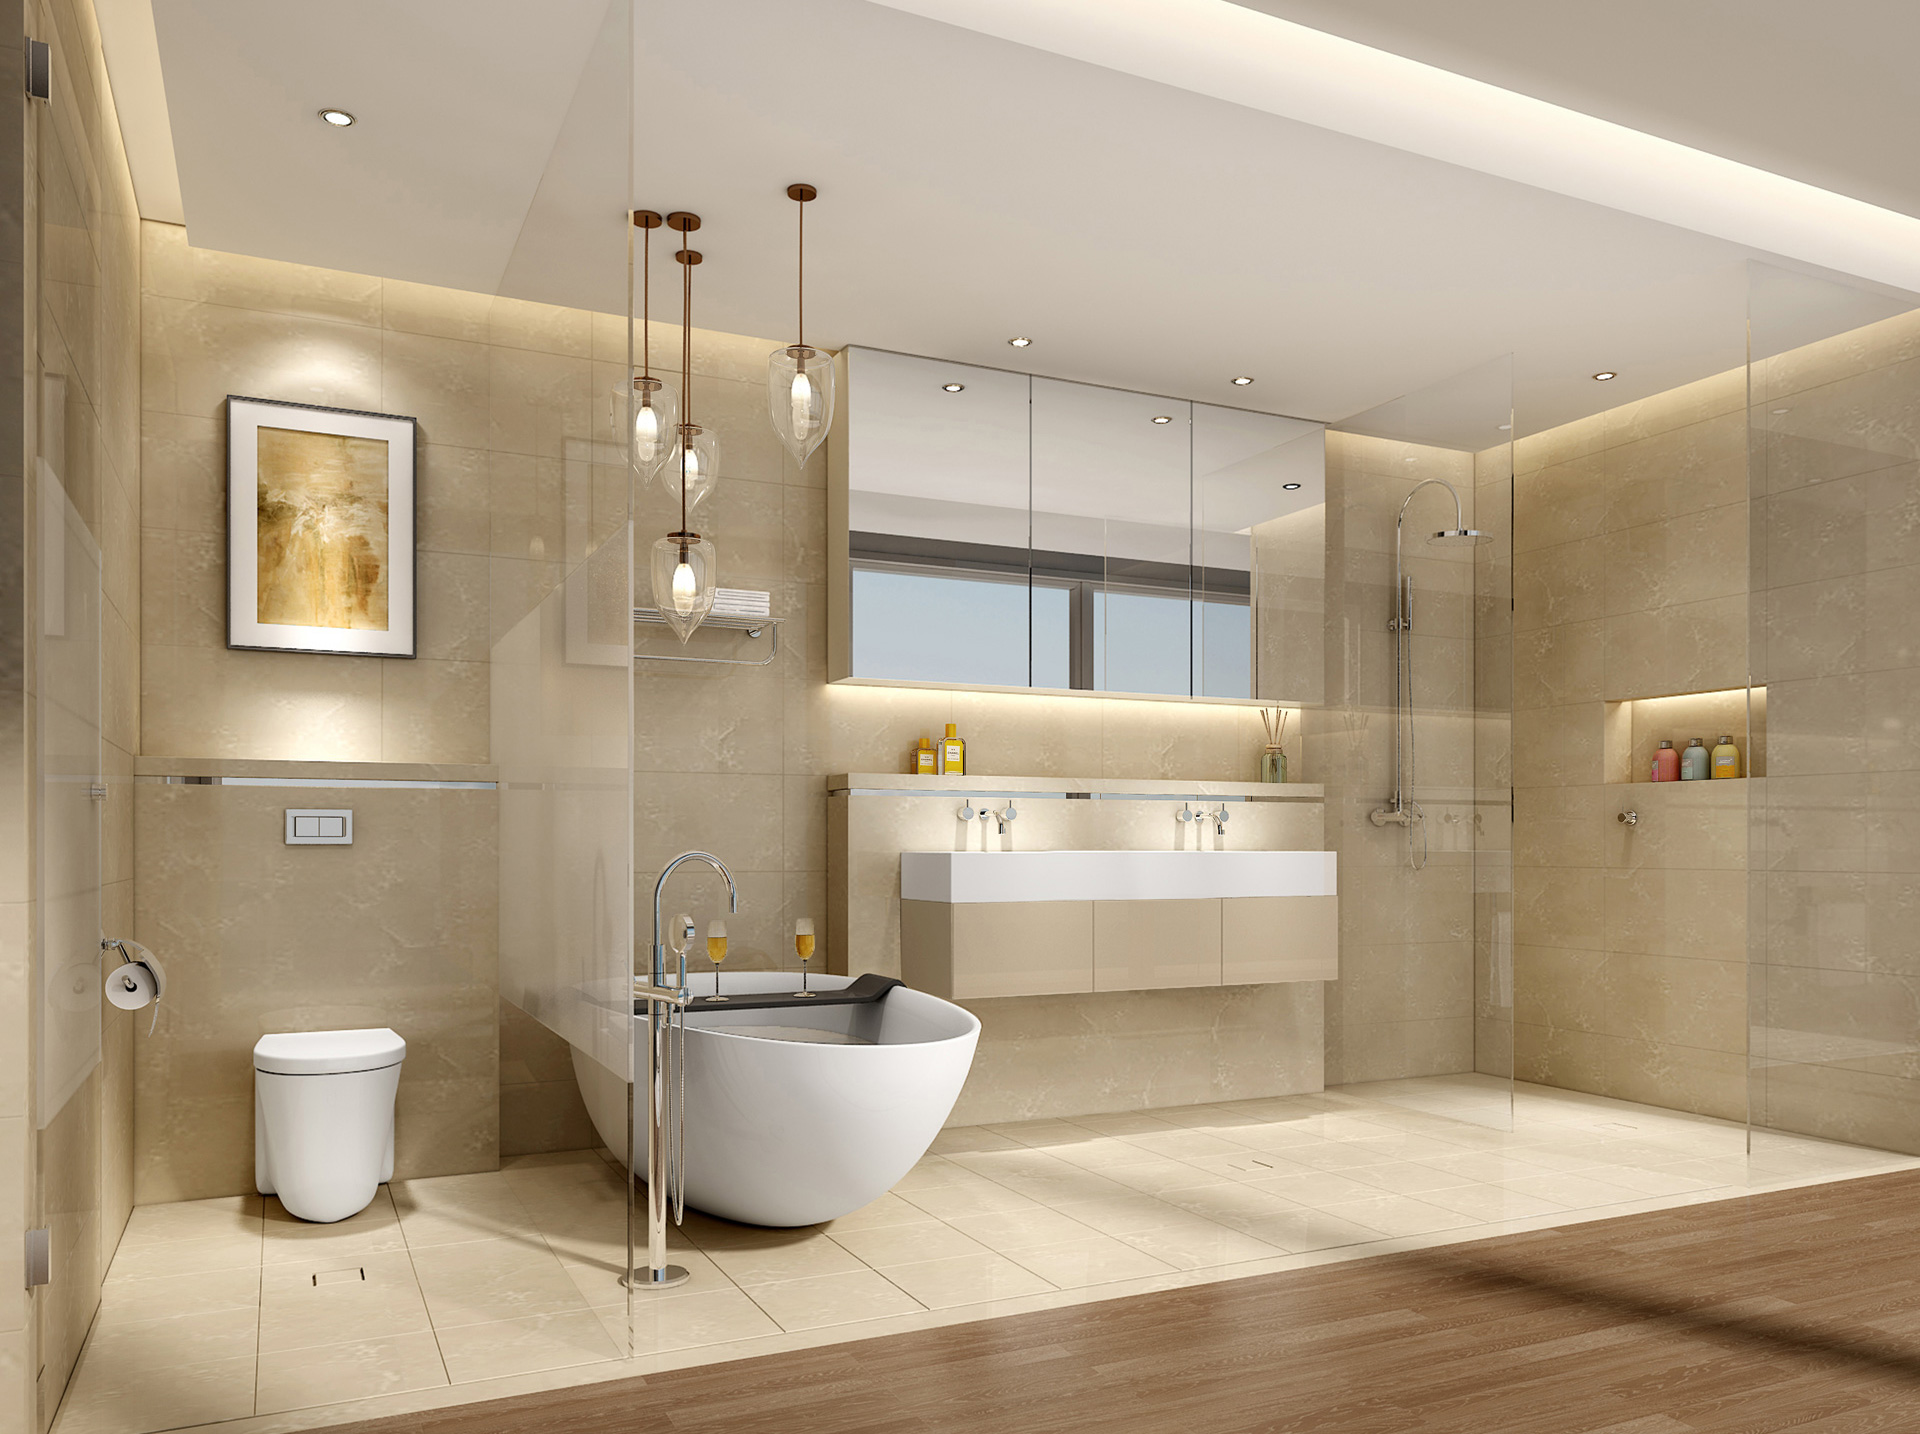 Bathroom of Crownview Apartments - Units for Sale Wollongong